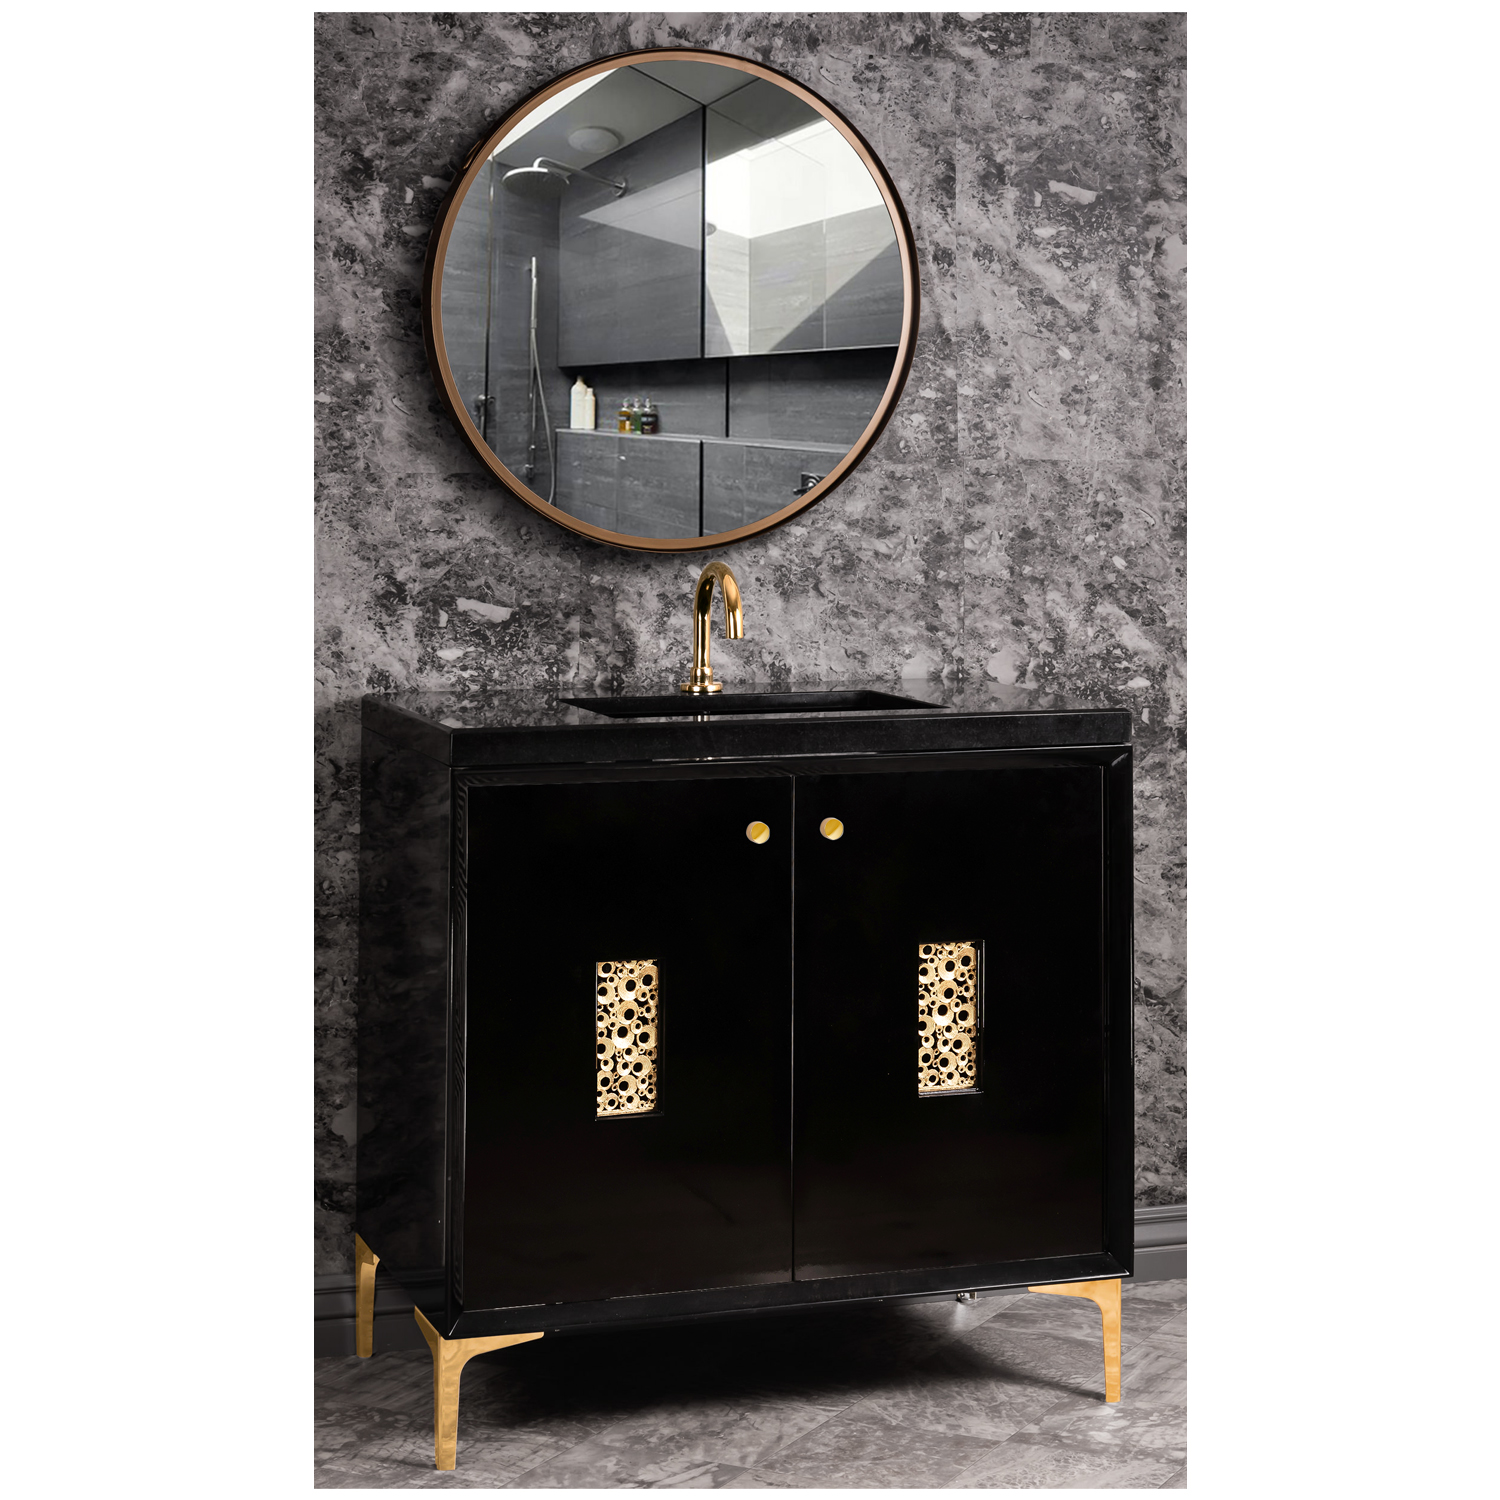 """VAN36B-0010 36"""" Black Frame With Coral - Shown with PB (Polished Brass)"""